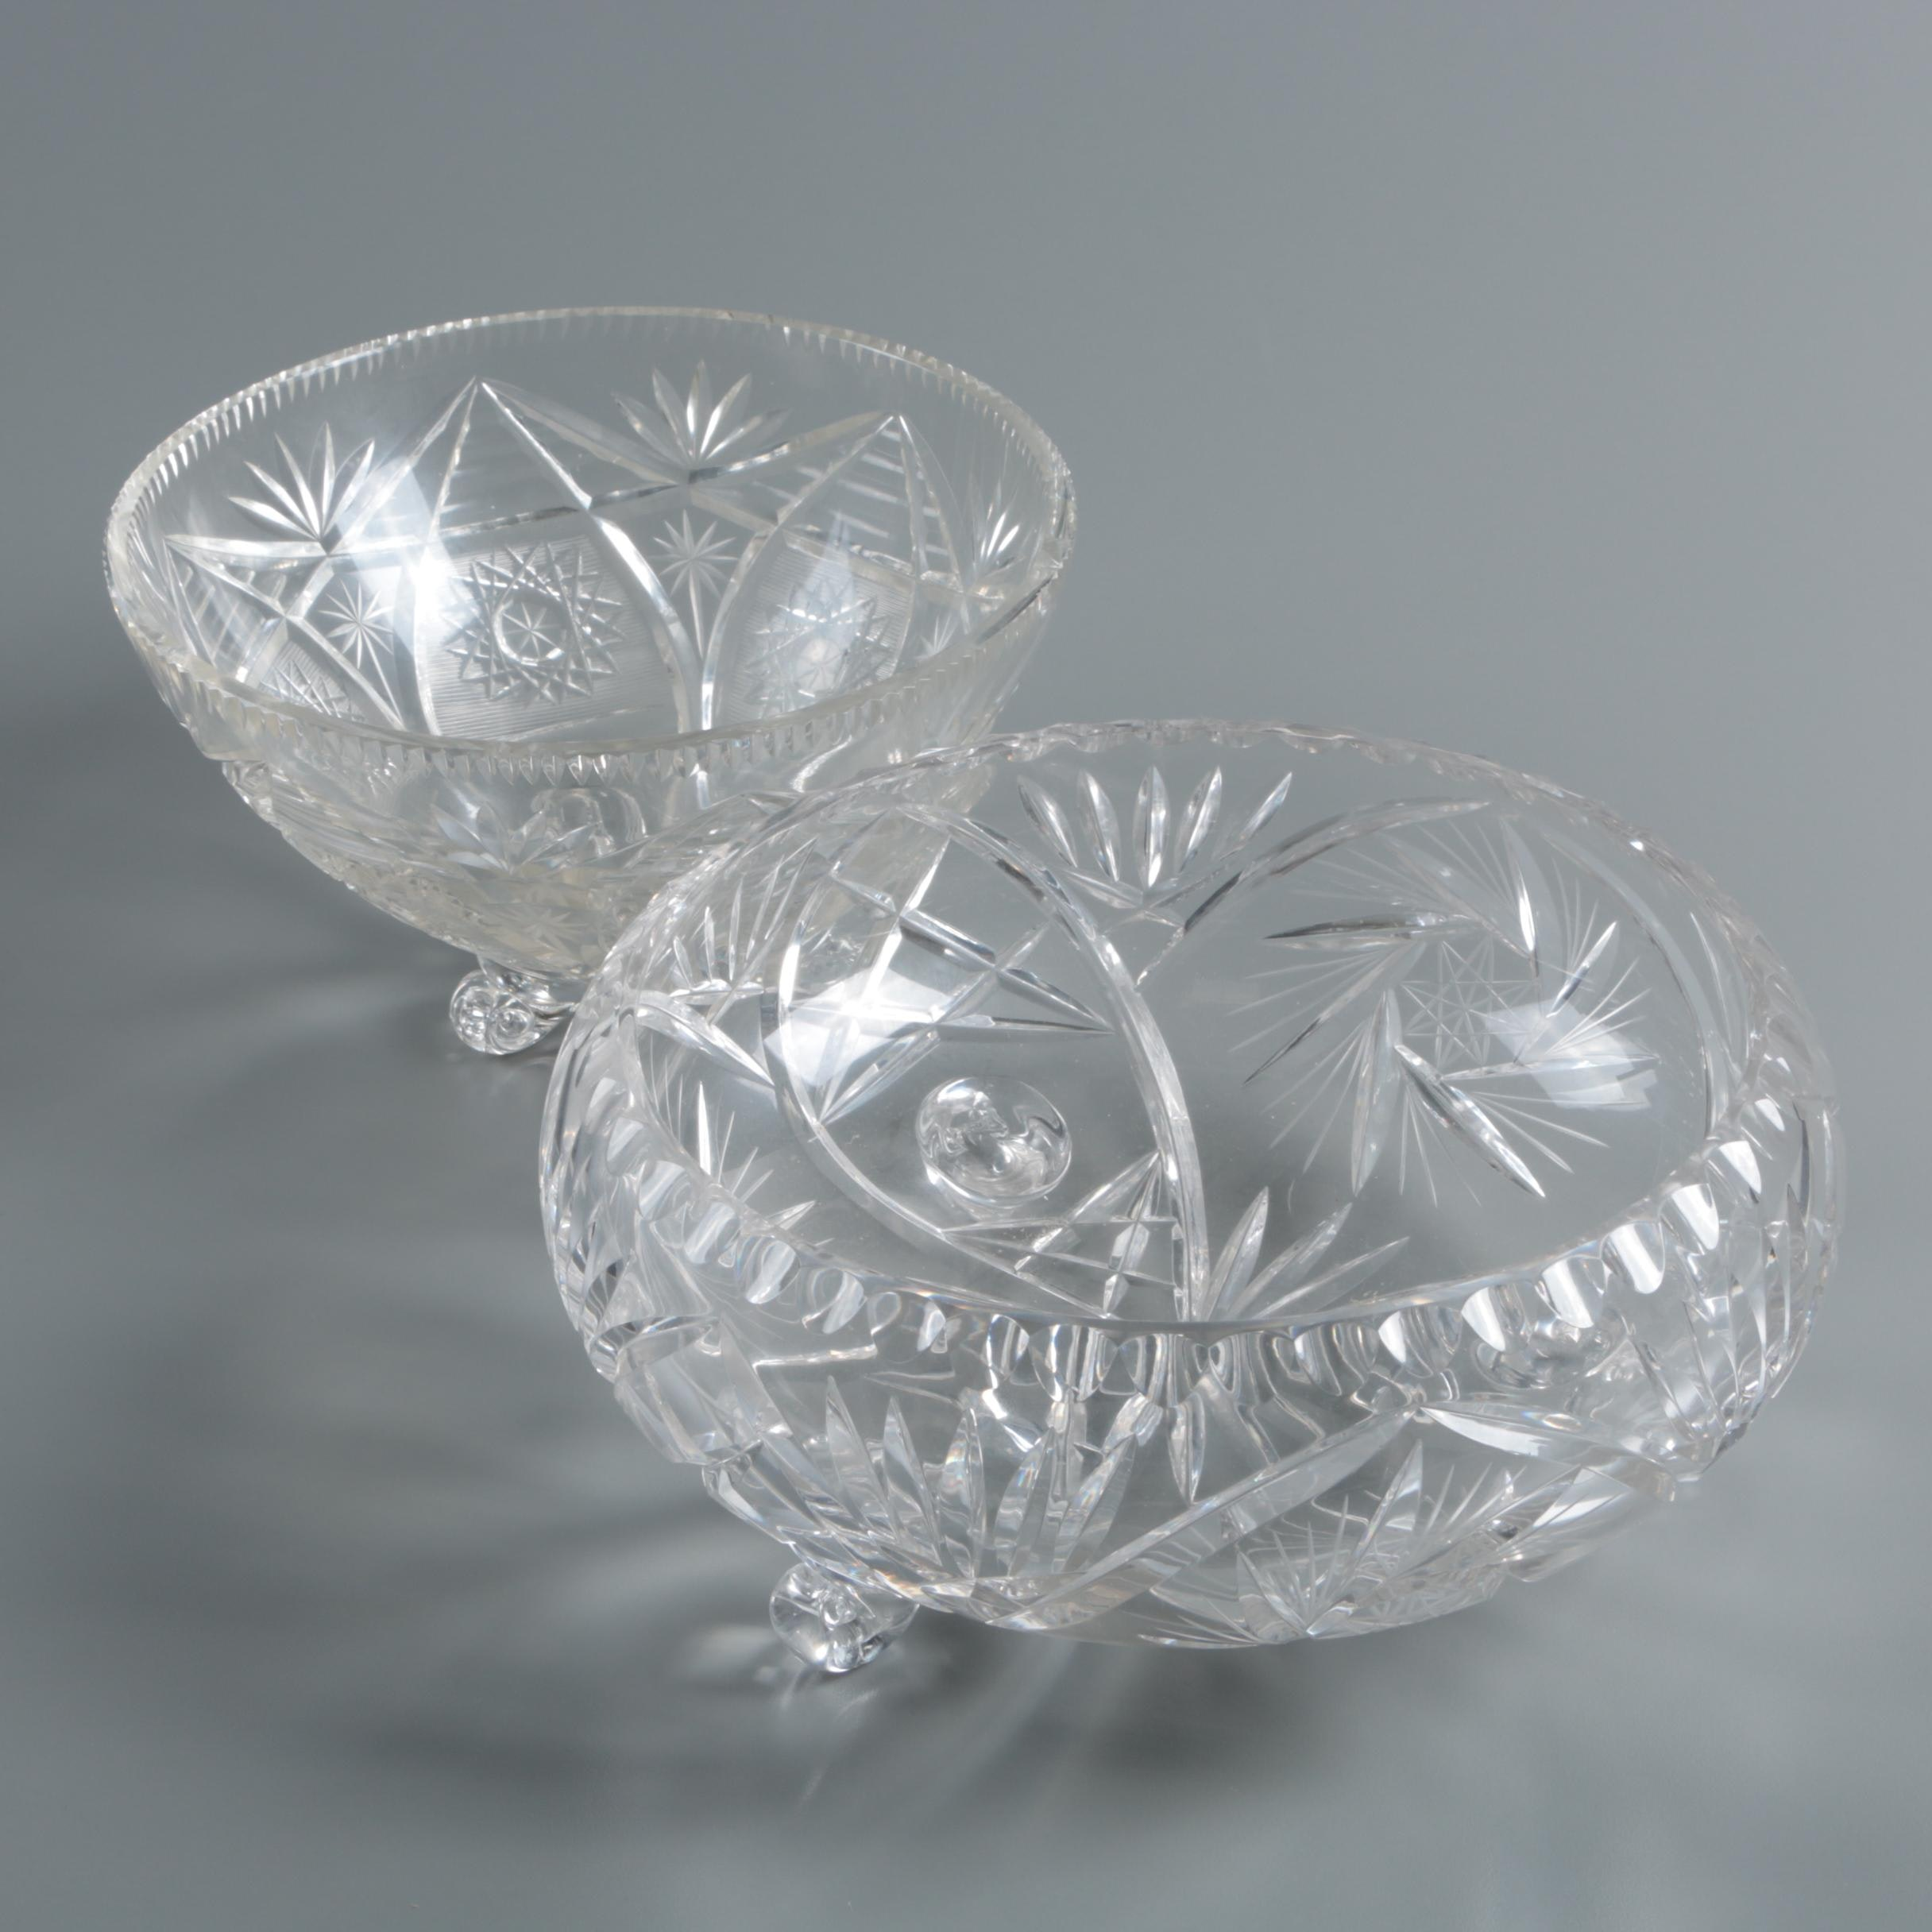 Vintage Hand-Cut Crystal Bowls with Applied Blown Feet